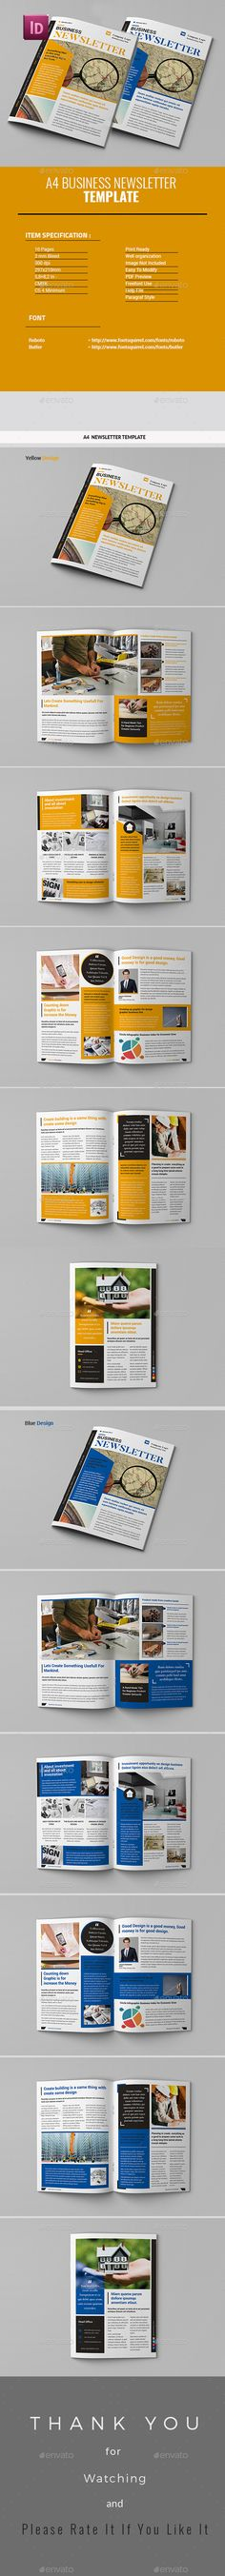 Clean Business Newsletter - 24 Pages | Print Templates, Cleaning